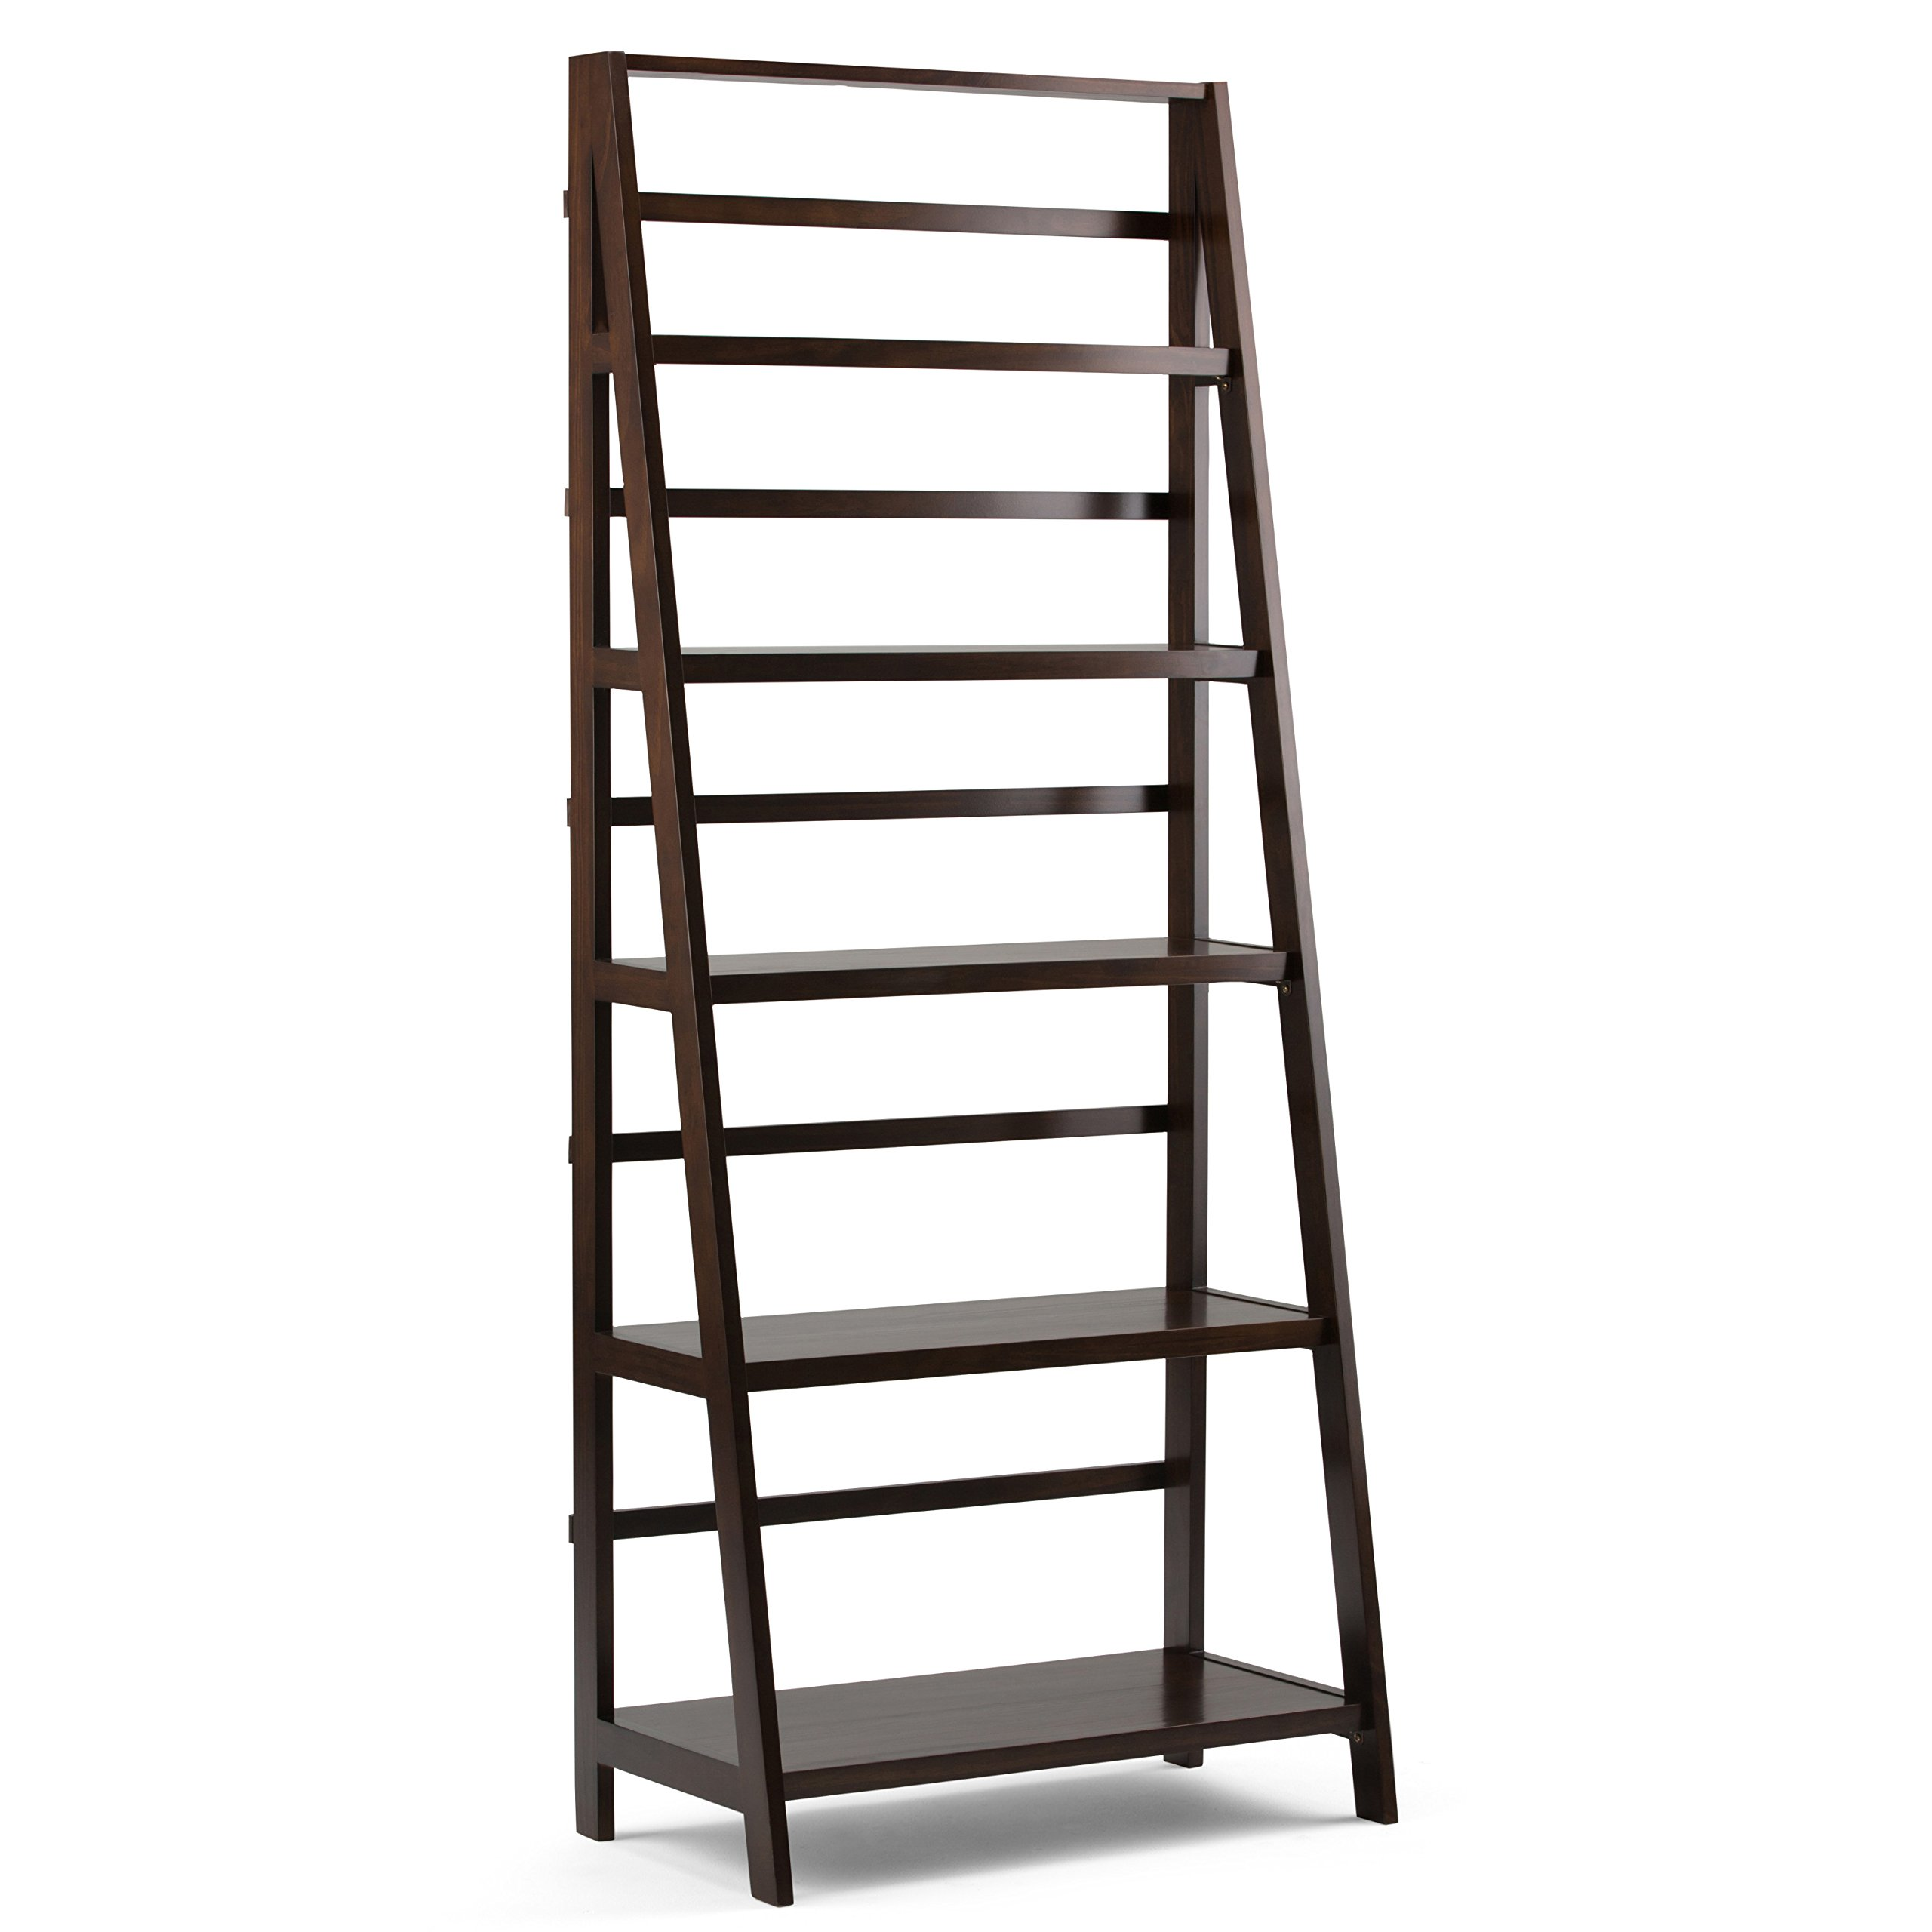 Simpli Home AXWELL3-016 Acadian Solid Wood 72 inch x 30 inch Rustic Bookcase in Tobacco Brown by Simpli Home